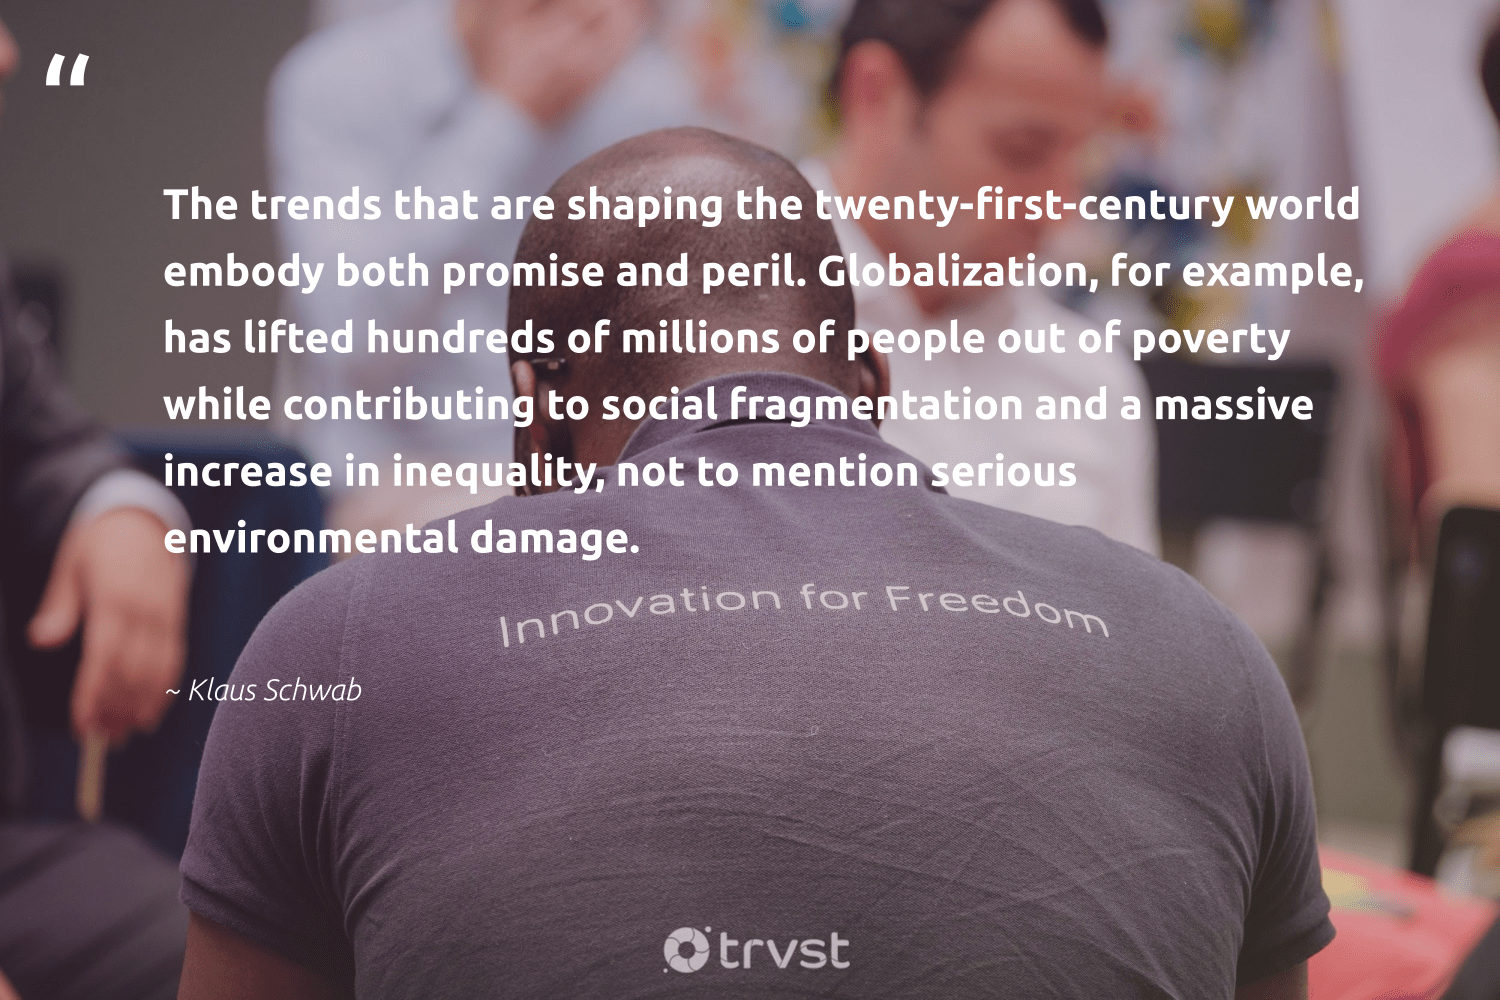 """The trends that are shaping the twenty-first-century world embody both promise and peril. Globalization, for example, has lifted hundreds of millions of people out of poverty while contributing to social fragmentation and a massive increase in inequality, not to mention serious environmental damage.""  - Klaus Schwab #trvst #quotes #environmental #poverty #endpoverty #socialchange #equalrights #planetearthfirst #giveback #sustainablefutures #collectiveaction #socialgood"